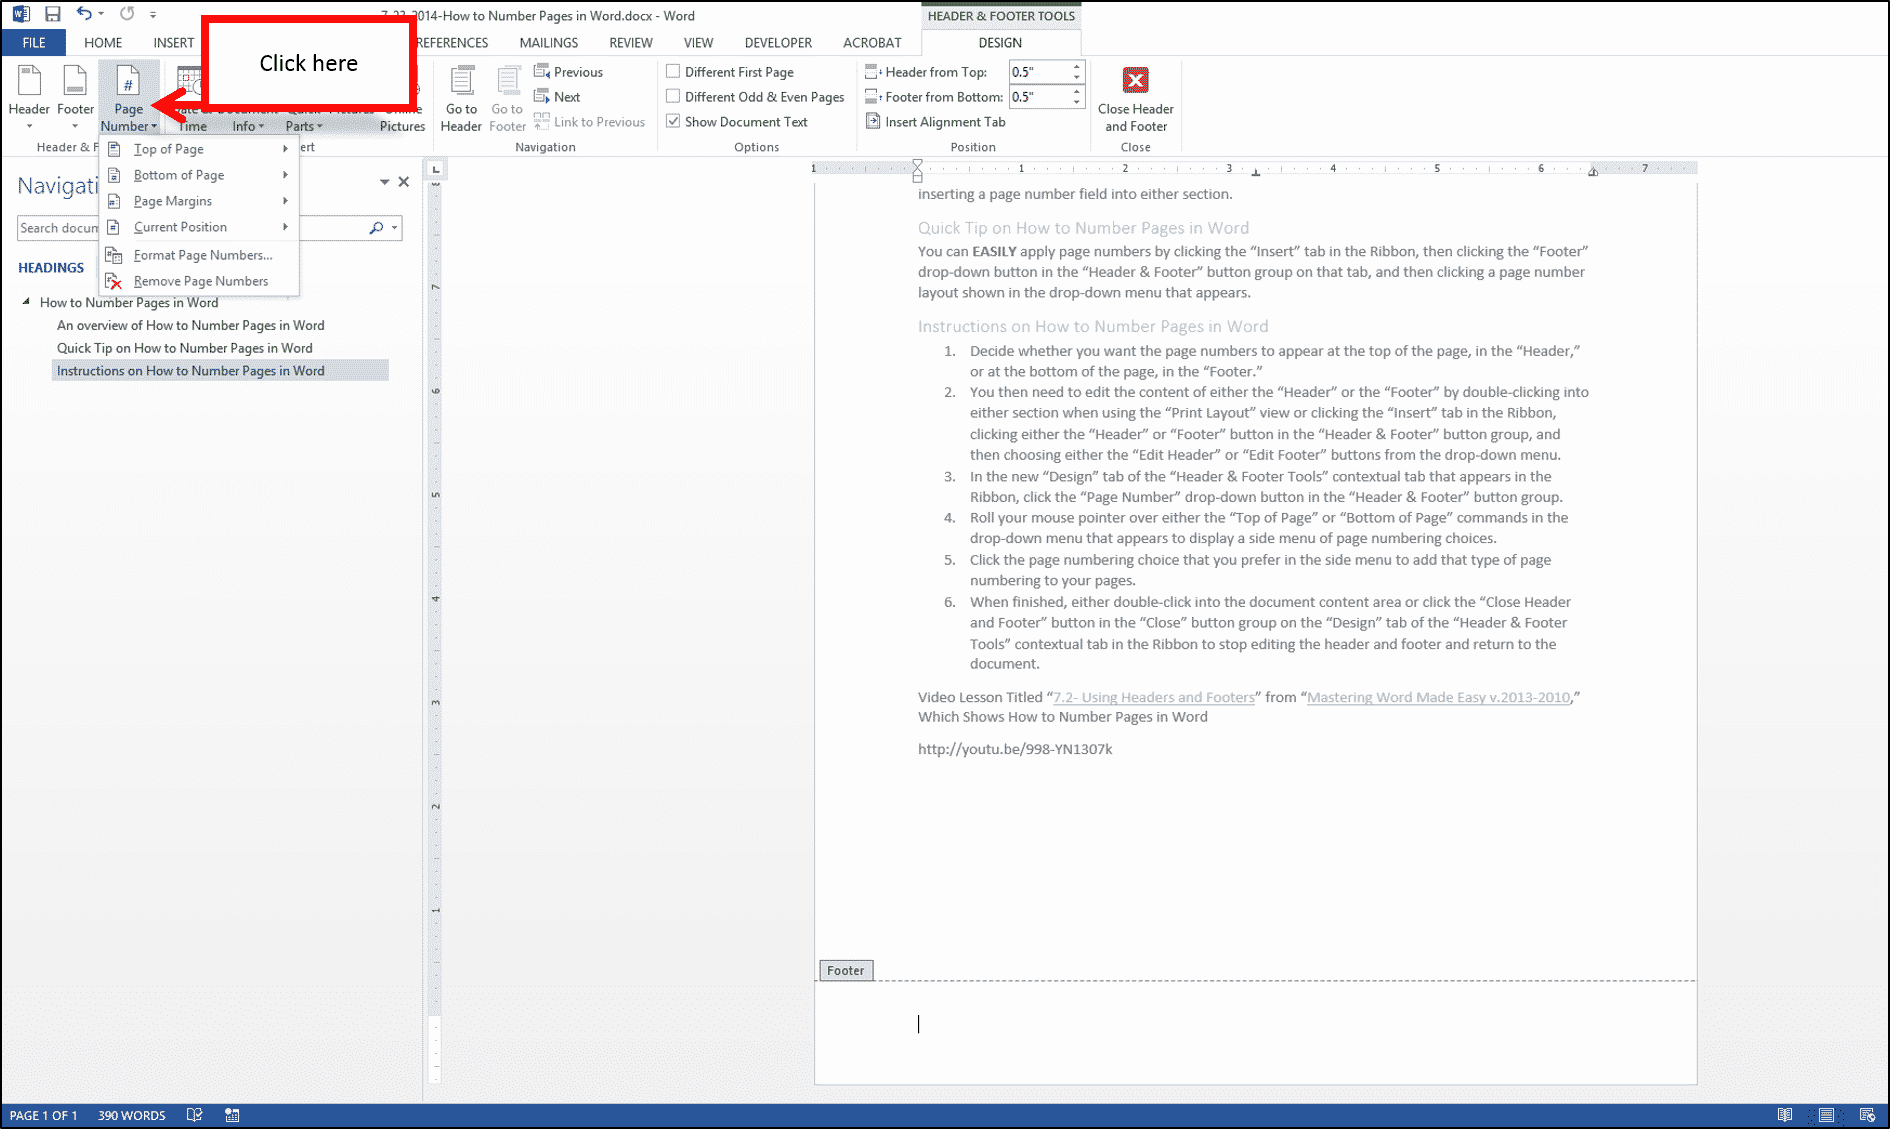 "How to Number Pages in Word: Step #3- In the new ""Design"" tab of the ""Header & Footer Tools"" contextual tab that appears in the Ribbon, click the ""Page Number"" drop-down button in the ""Header & Footer"" button group."